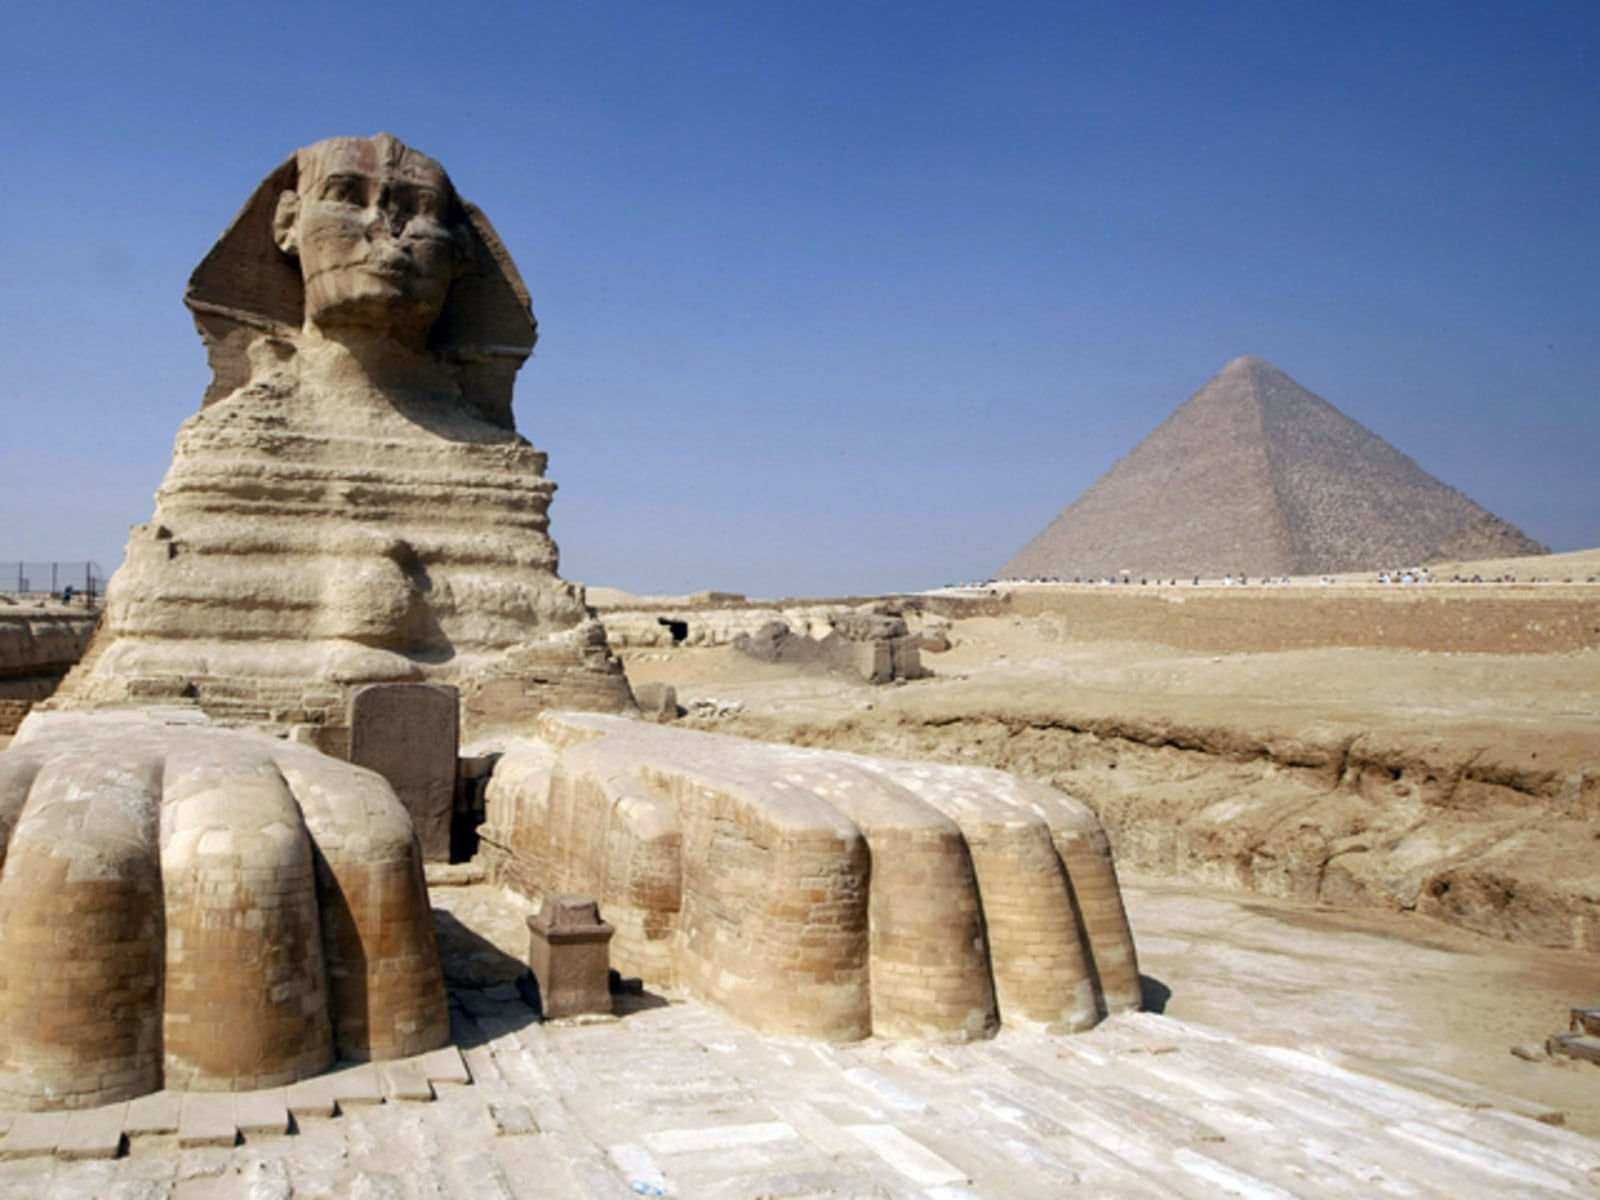 Image: The Great Sphinx of Giza